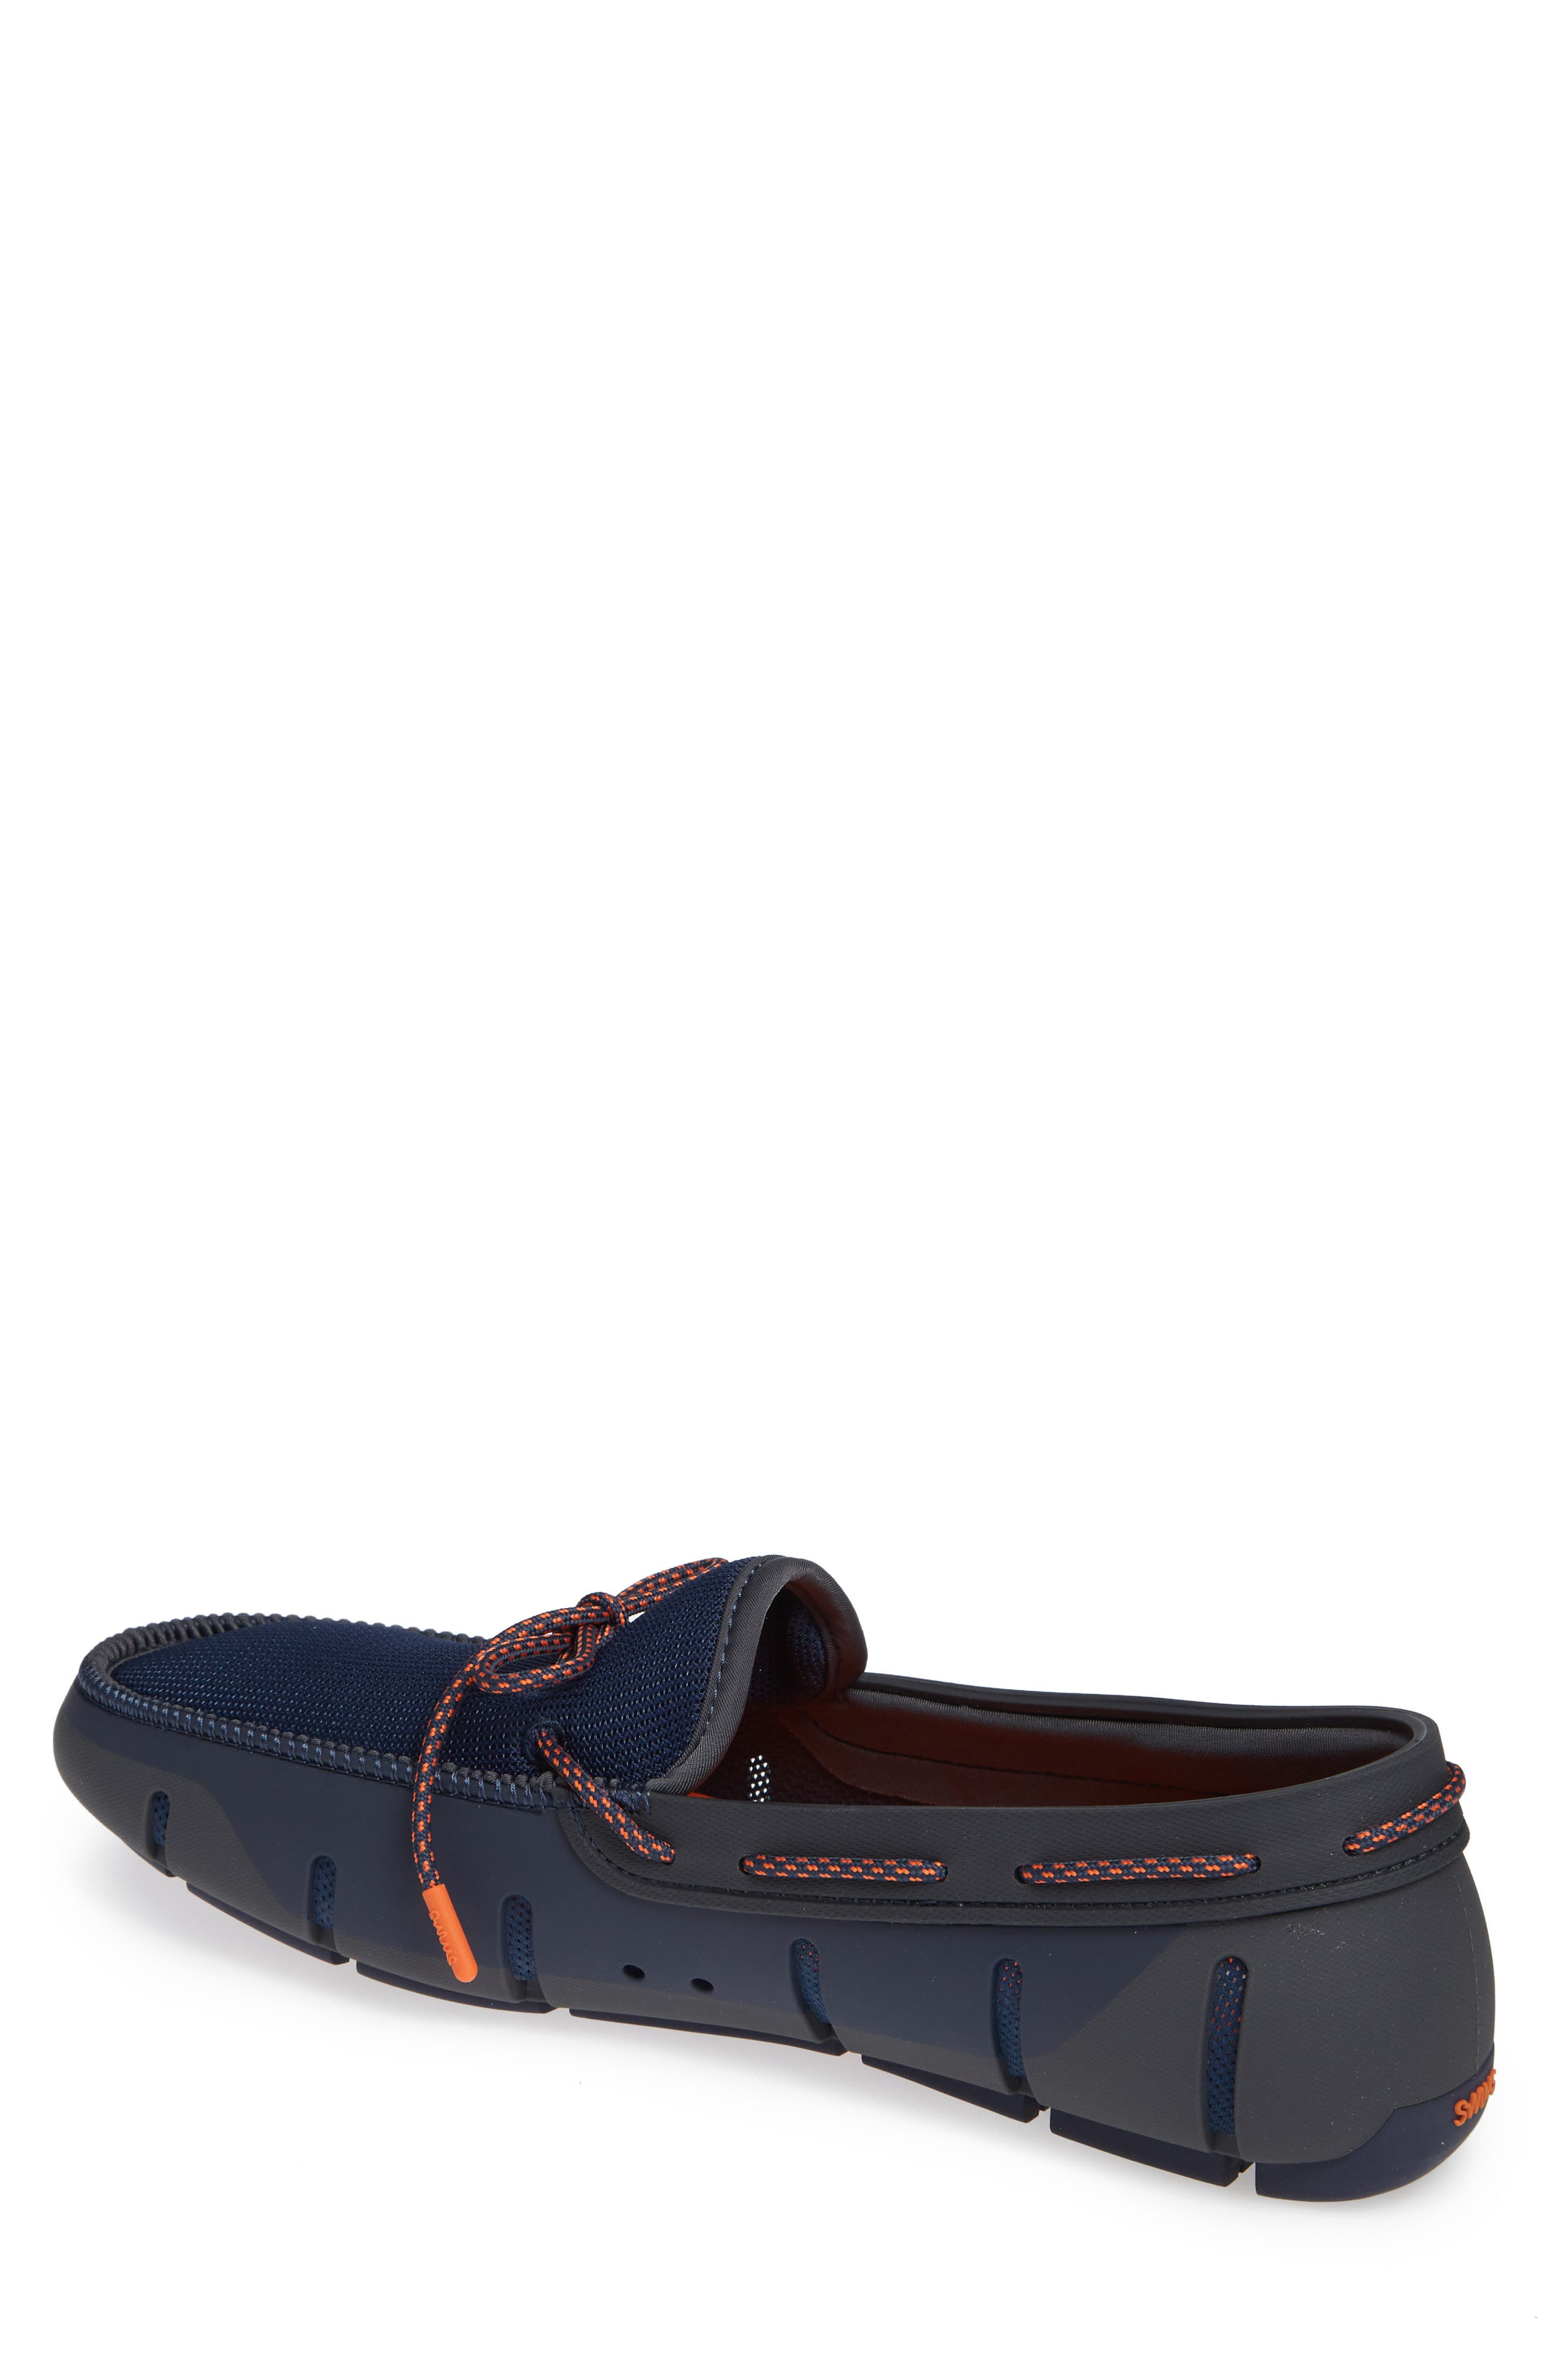 Stride Lace Loafer,                             Alternate thumbnail 2, color,                             Navy/ Dark Gray